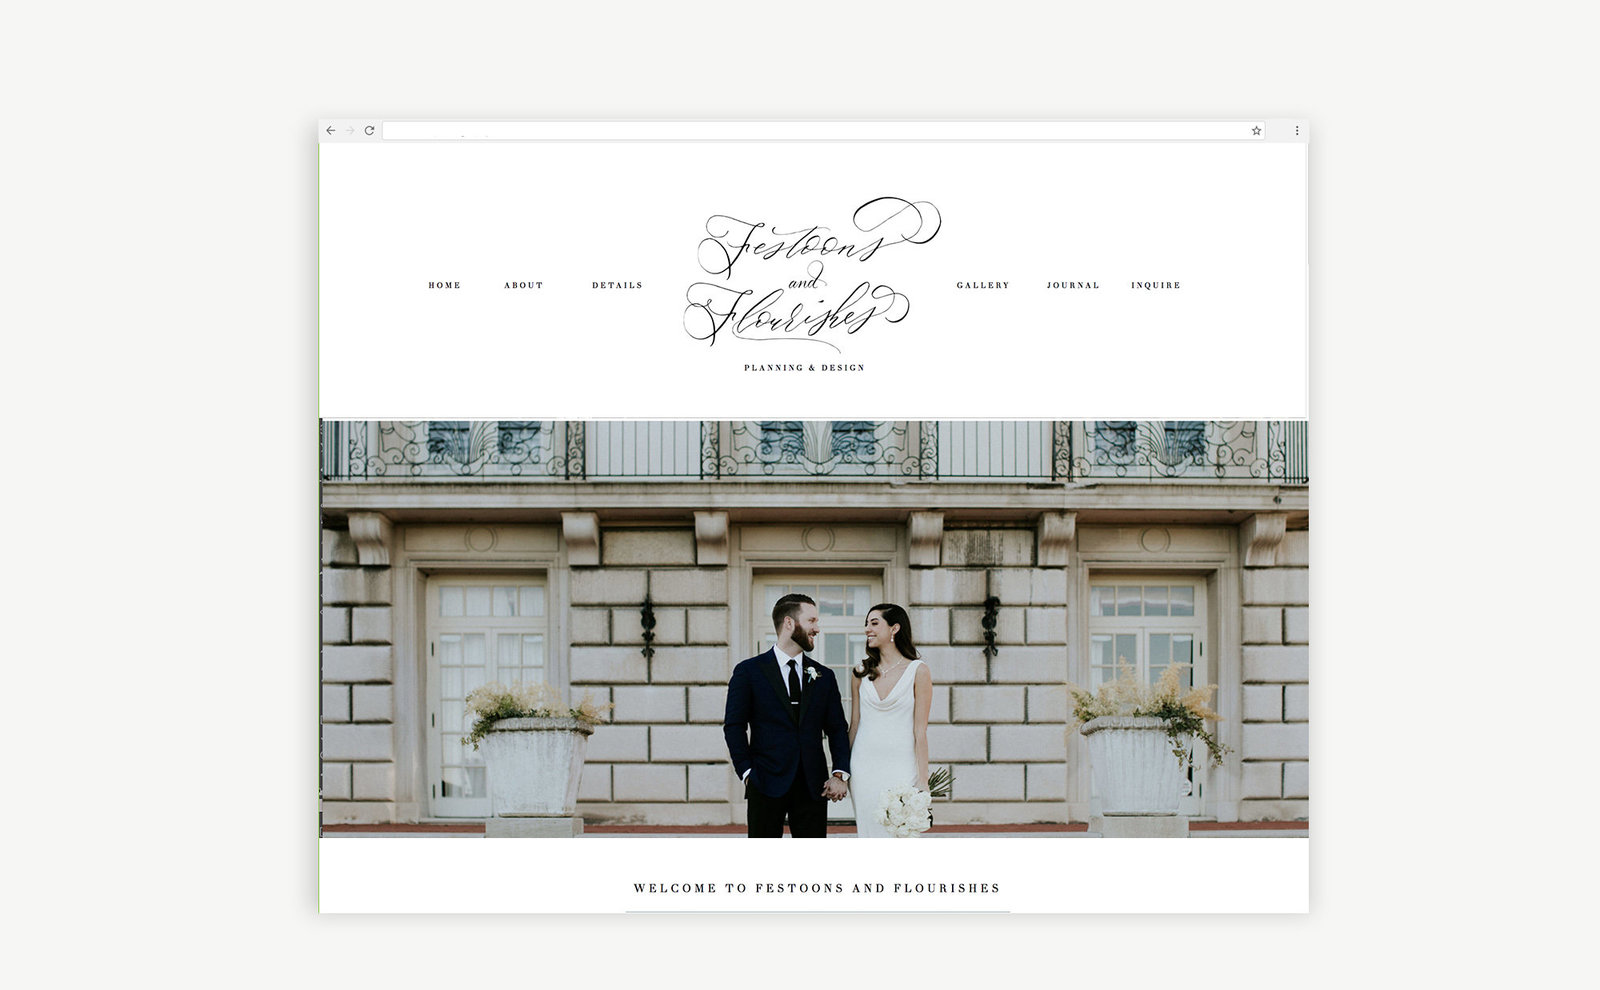 showit-website-branding-for-wedding-businesses-festoons-01